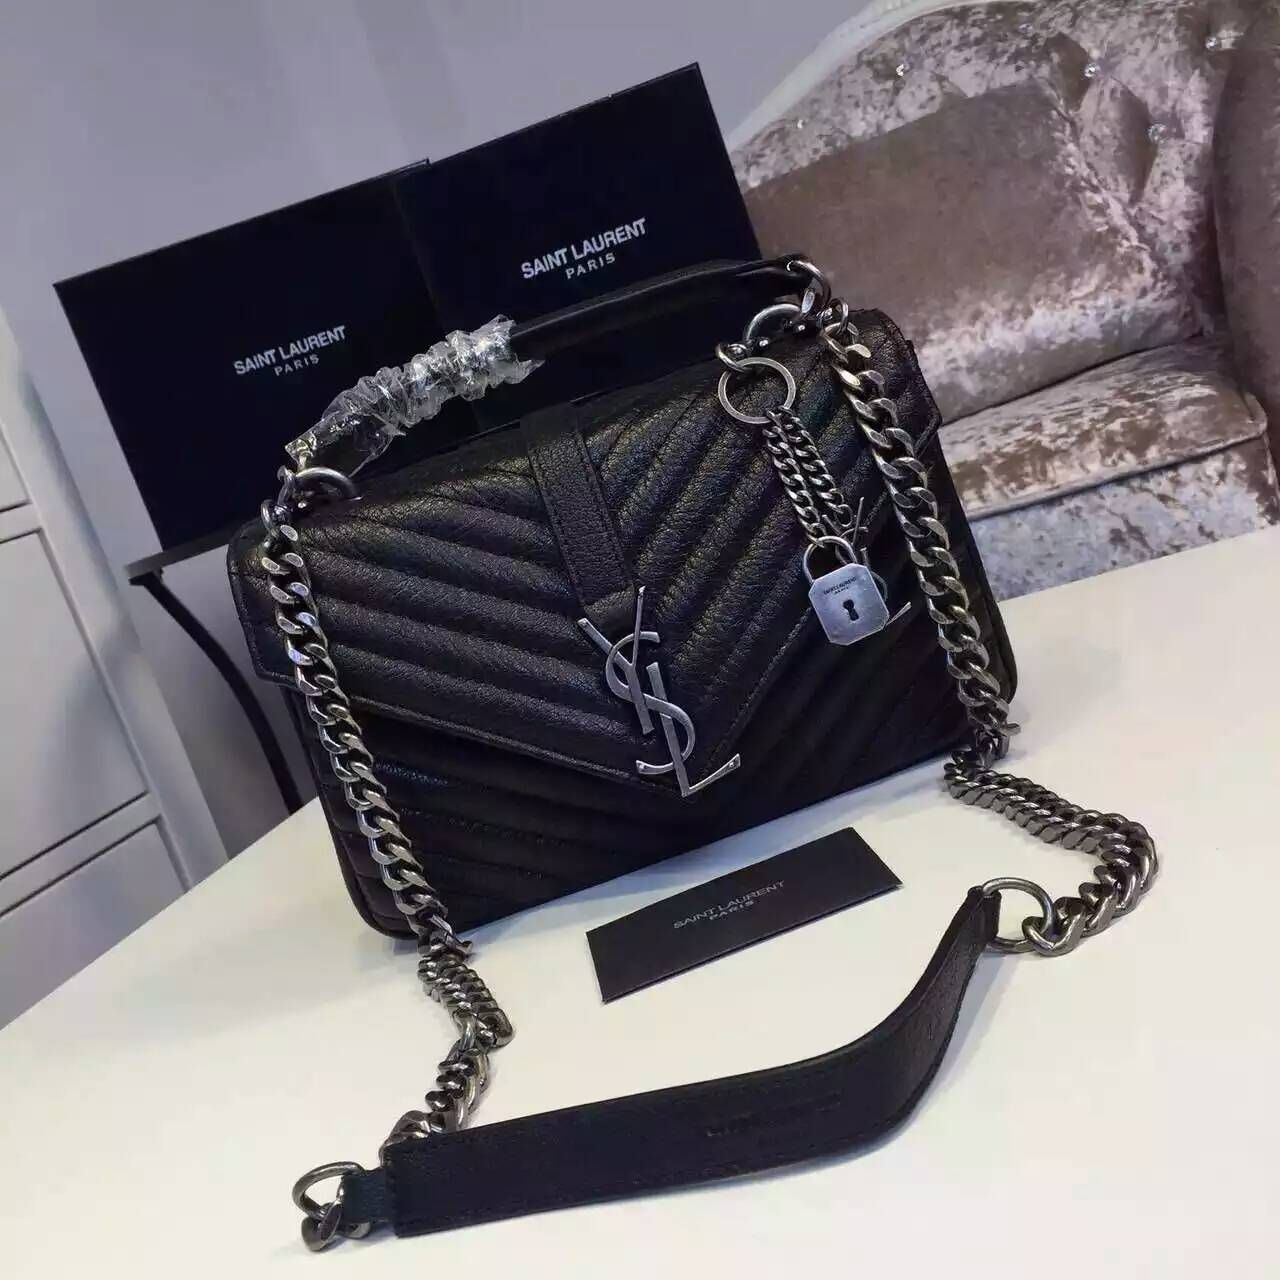 2016 New Saint Laurent Bag Cheap Sale-Saint Laurent Classic Medium COLLEGE  MONOGRAM Bag in Black MATELASSE Leather b081492894a2b